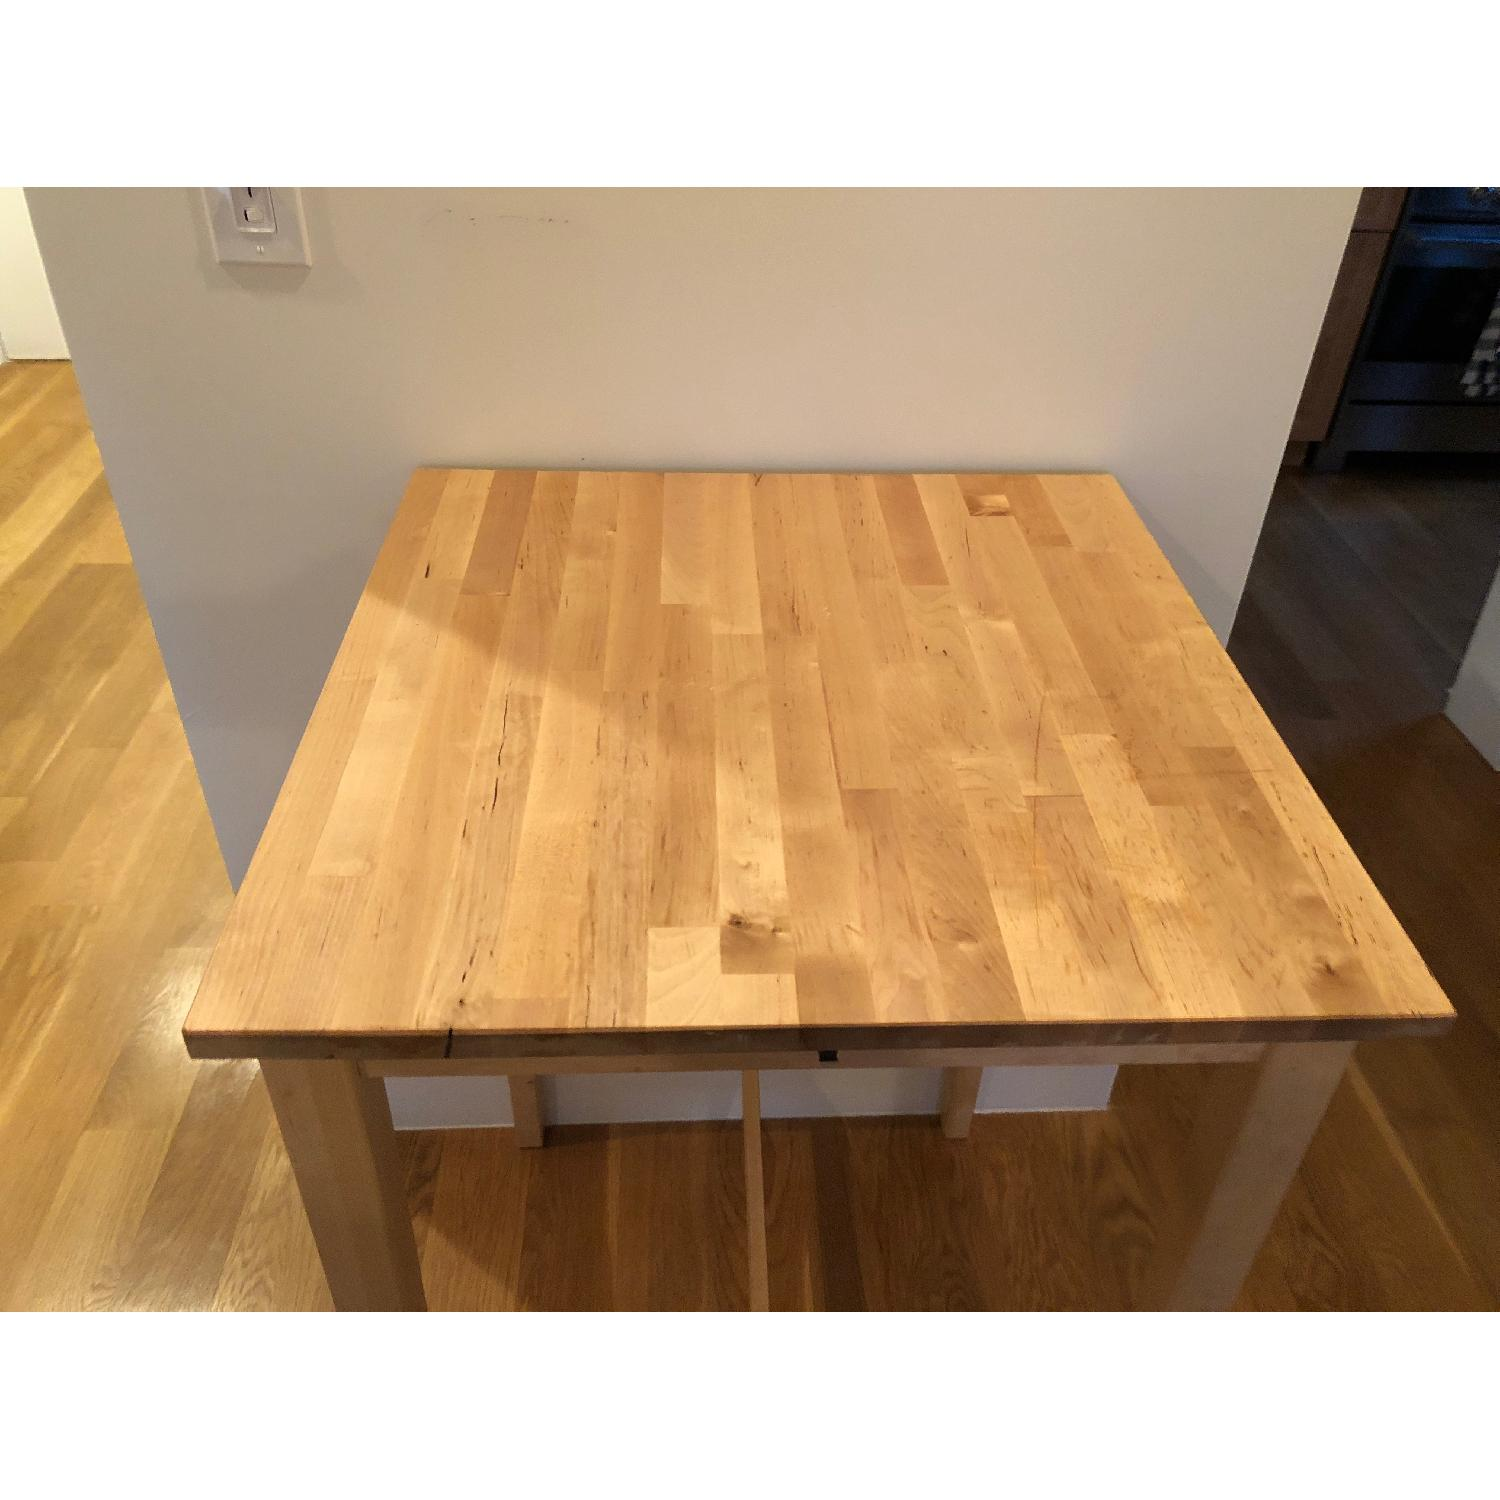 Ikea Bjorkudden Counter Height Table-2